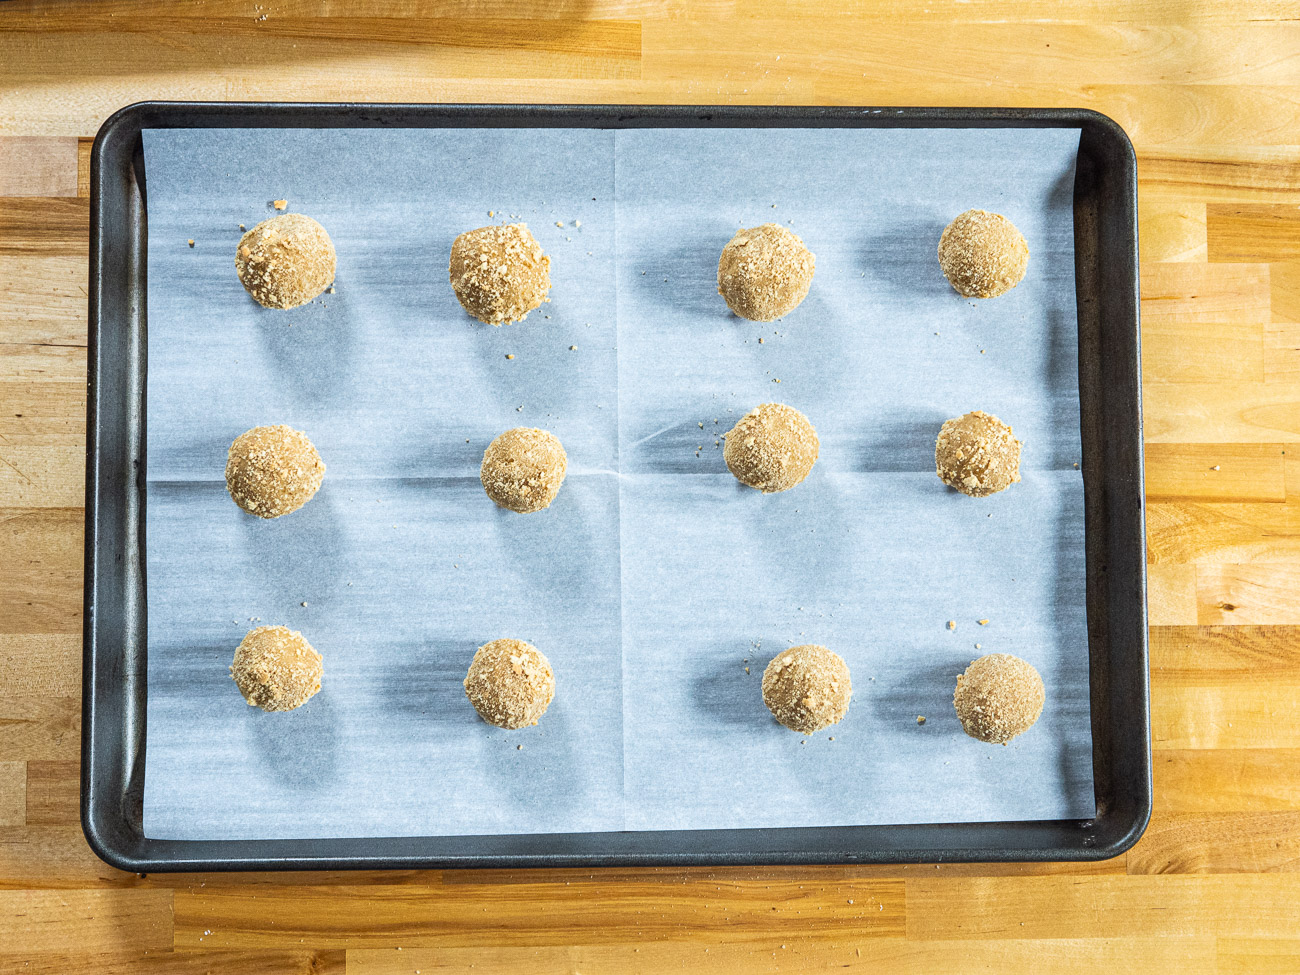 Place the cookie dough balls several inches apart on prepared baking sheets. Bake 8-11 minutes, rotating the pan half way through.